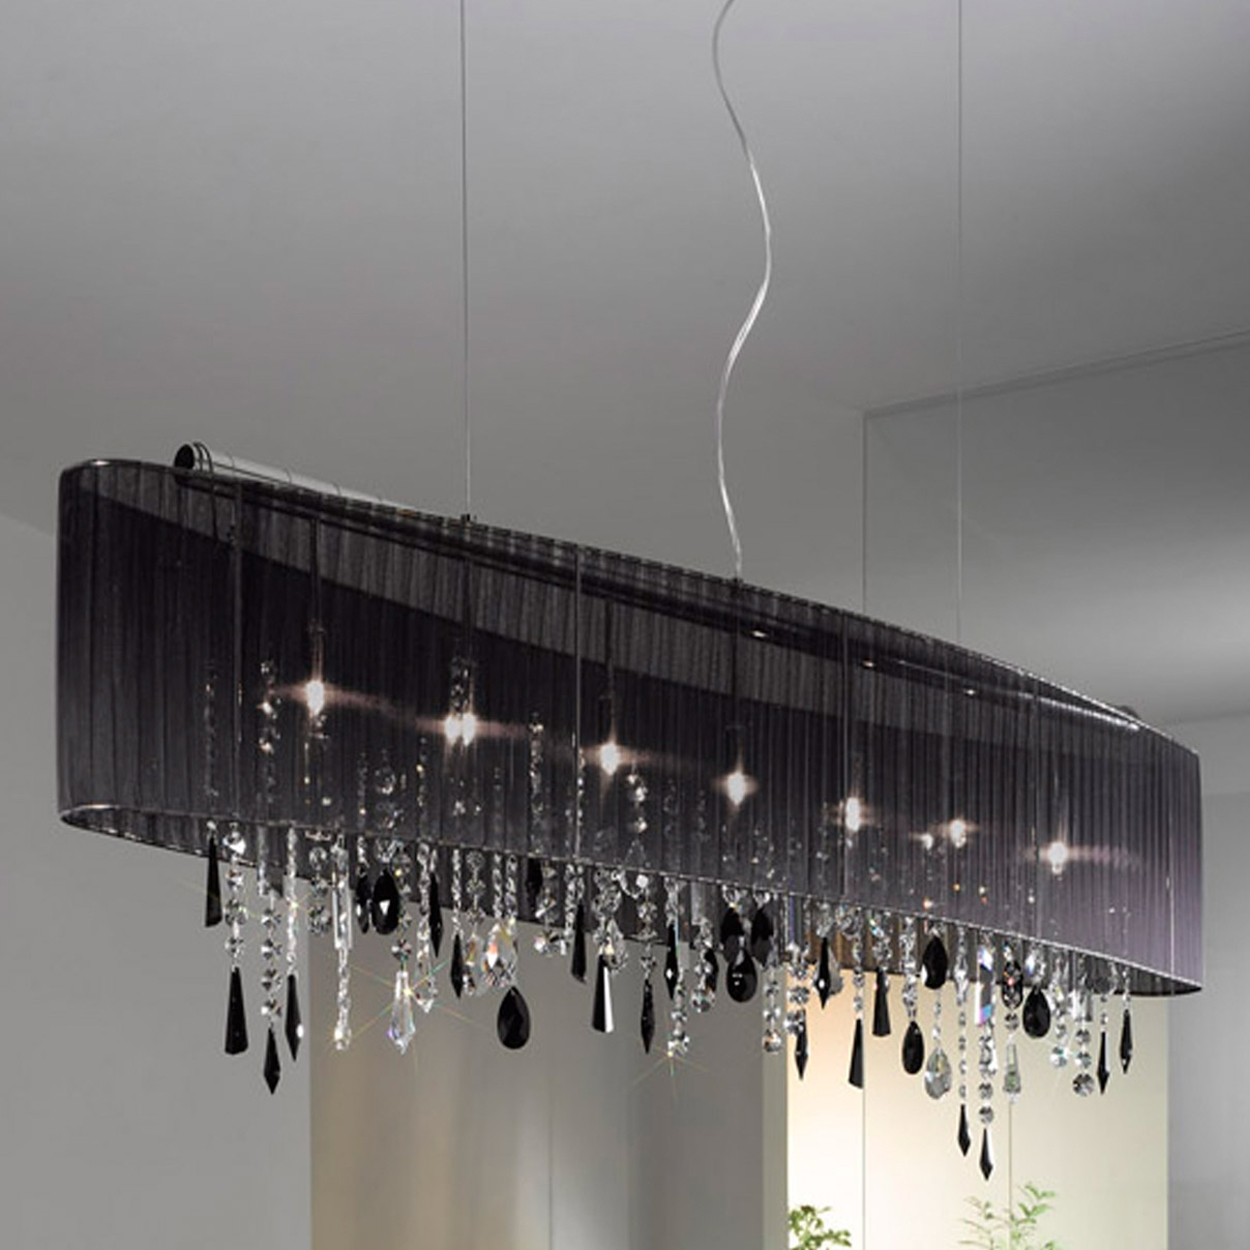 Phenomenal Chandelier Shades Black Picture Ideas Perfect Design Throughout Chandeliers With Black Shades (Image 21 of 25)